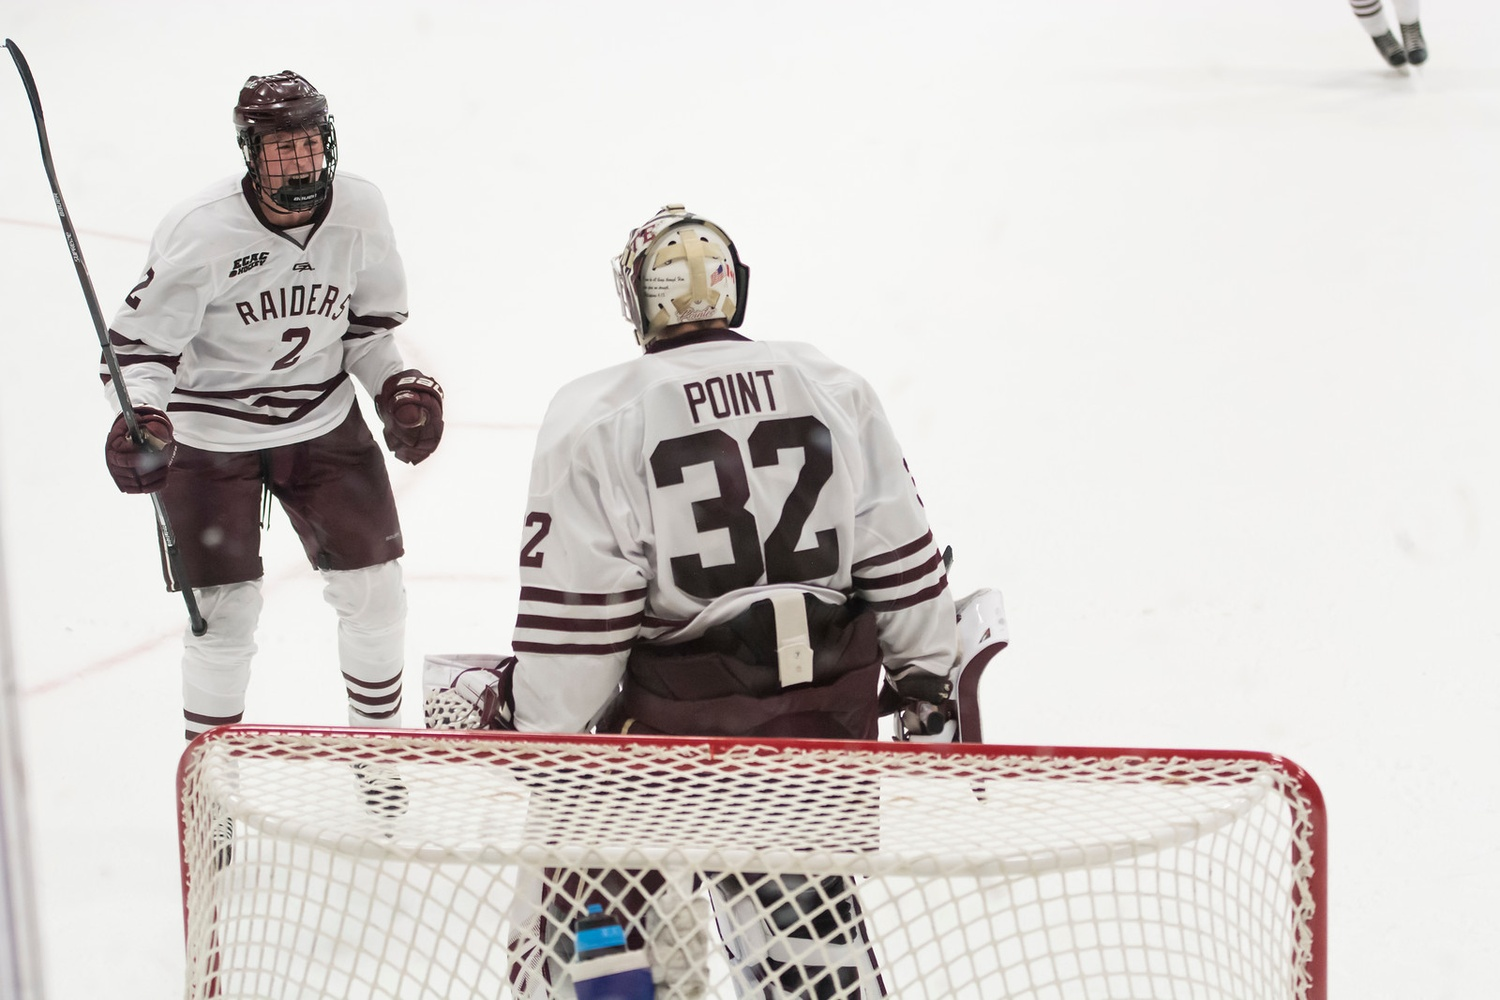 Colgate's stud netminder Colton Point demonstrated why he sits atop the NCAA in goals against average and save percentage, as he held Harvard to just one goal on 31 shots.